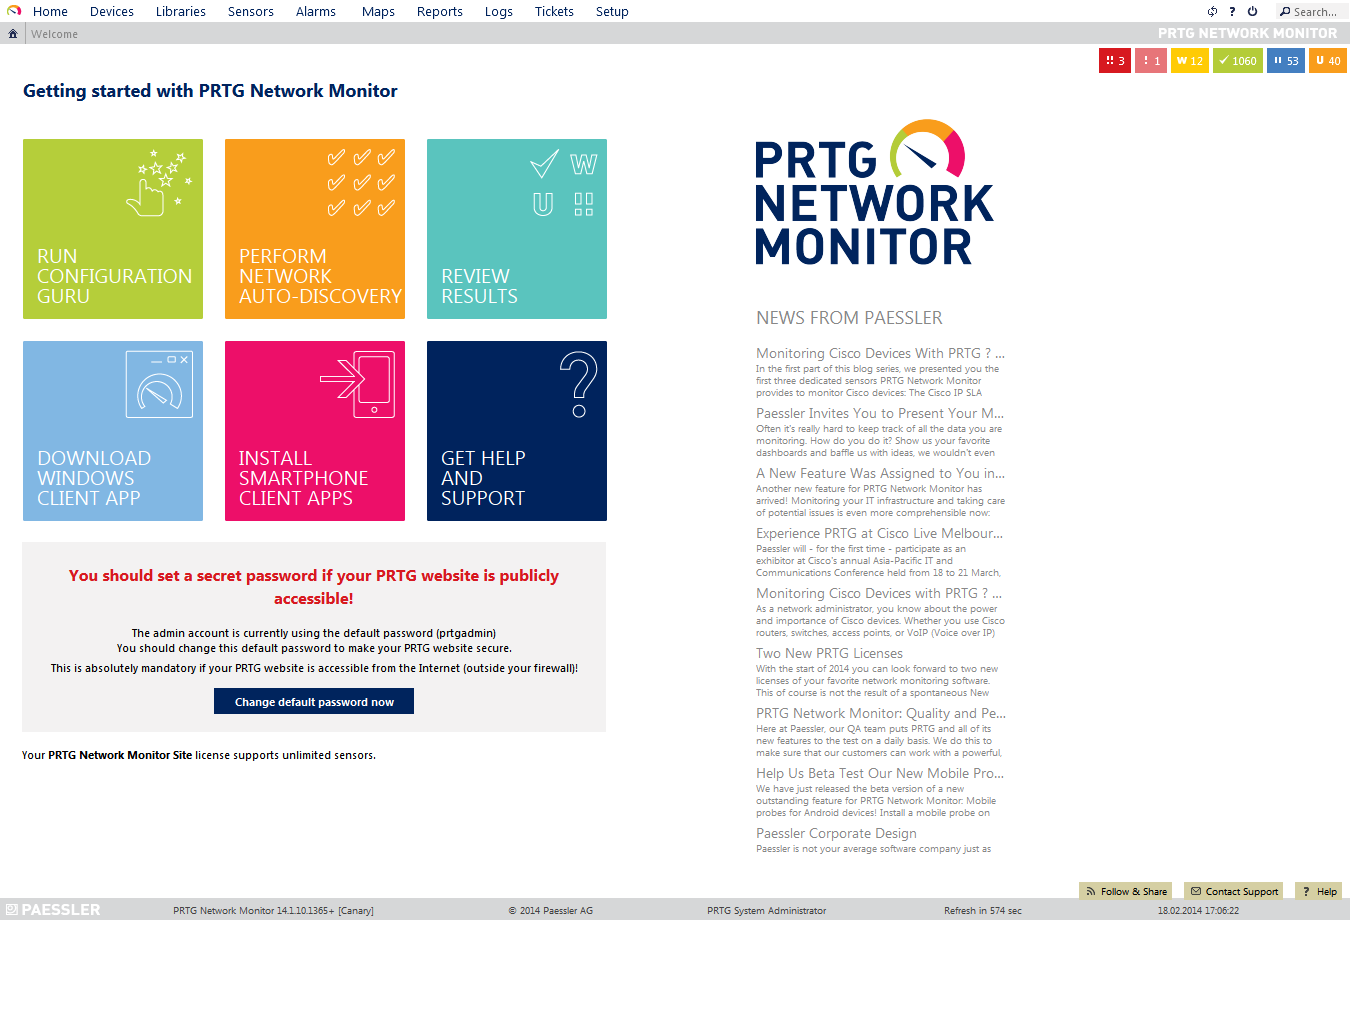 Start screen of the PRTG web interface